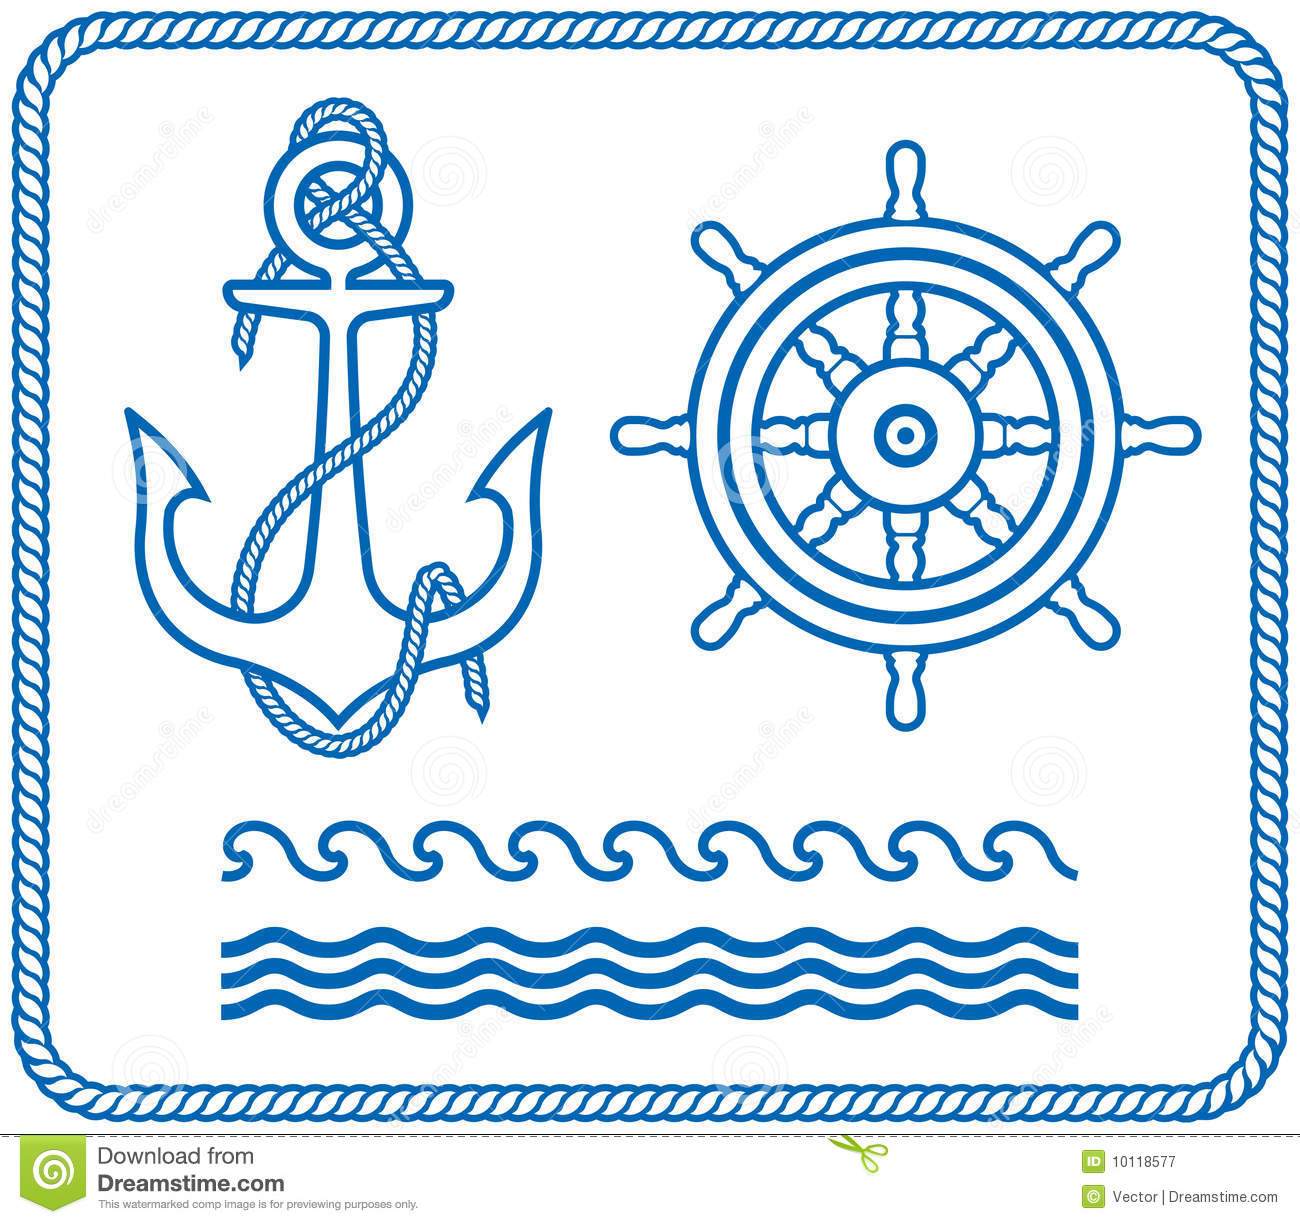 Anchor and helm nautical designs royalty free stock for Helm design